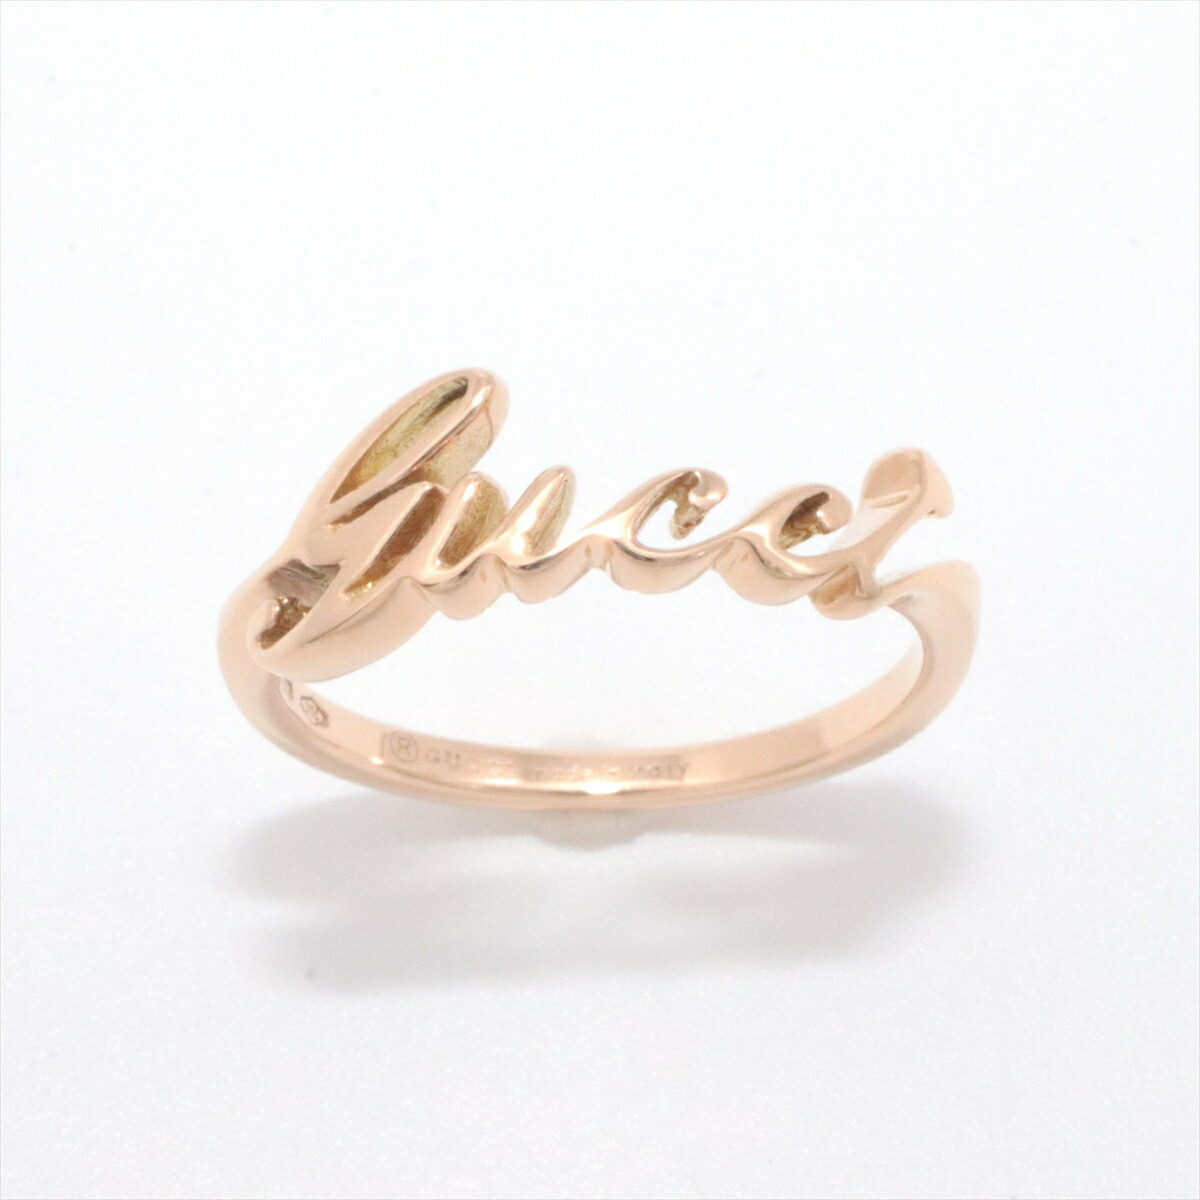 best website d97ee 0e9bc 新古品】グッチ/GUCCI レディース ジュエリー ピンキーリング ...